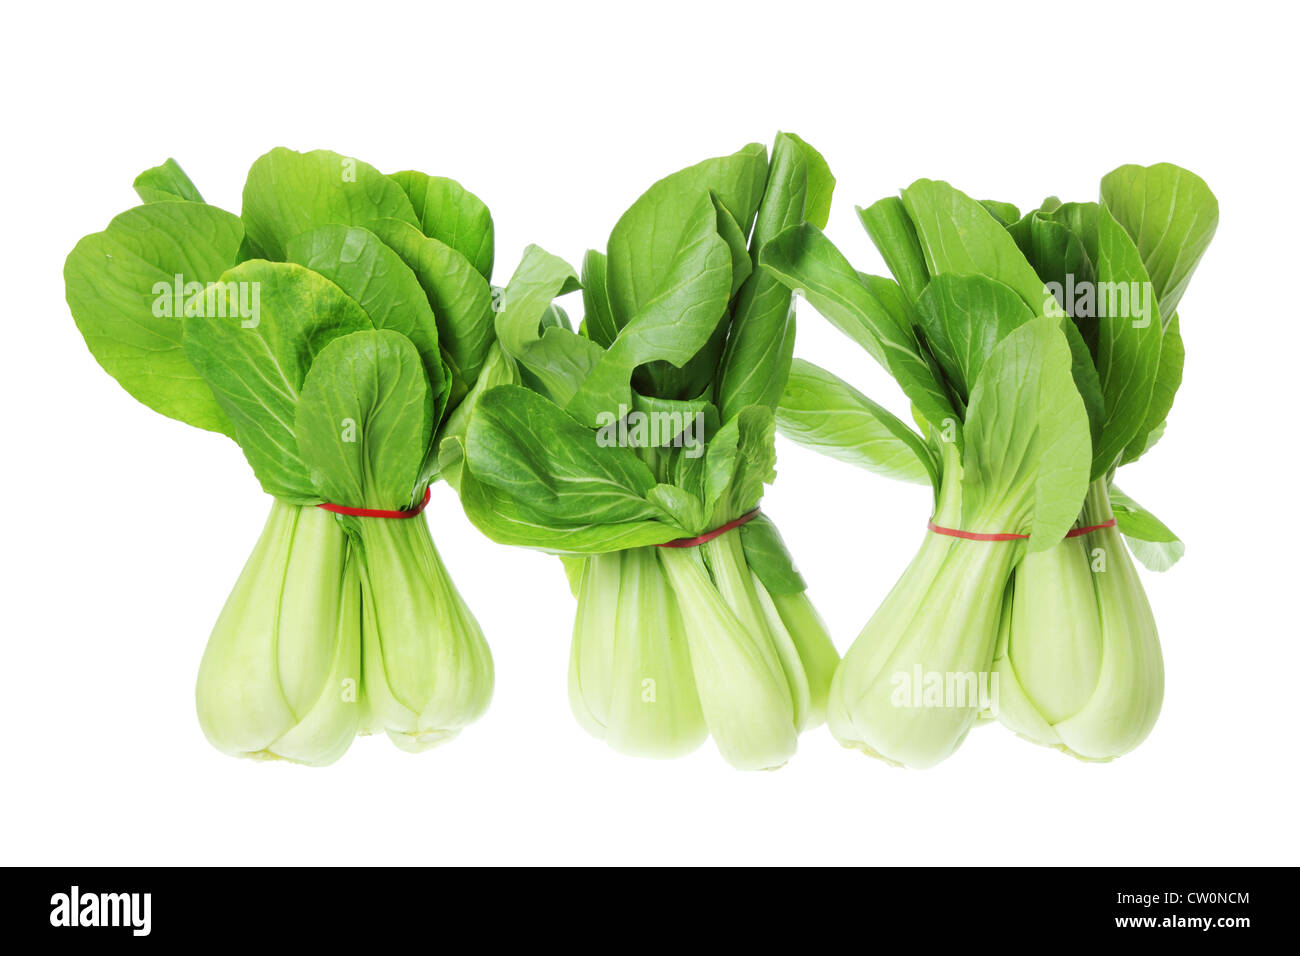 Bunches of Bok Choy - Stock Image